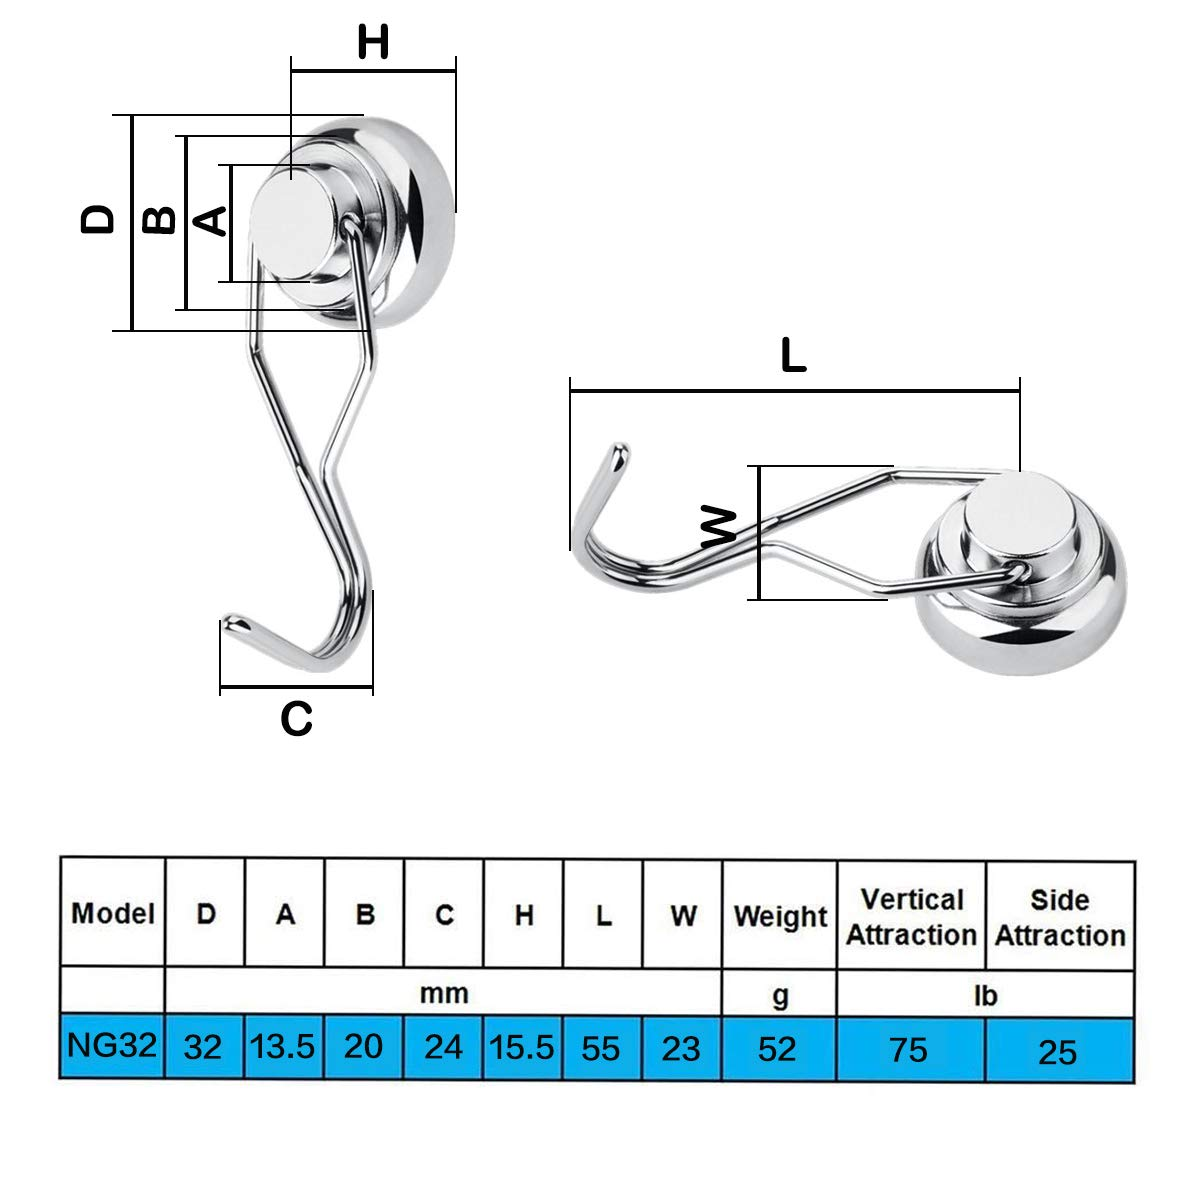 FINDMAG 35LBS Swivel Swing Powerful Magnetic Hooks Strong Heavy Duty Neodymium Magnet Hooks for Kitchen Office and Garage Workplace Pack of 8